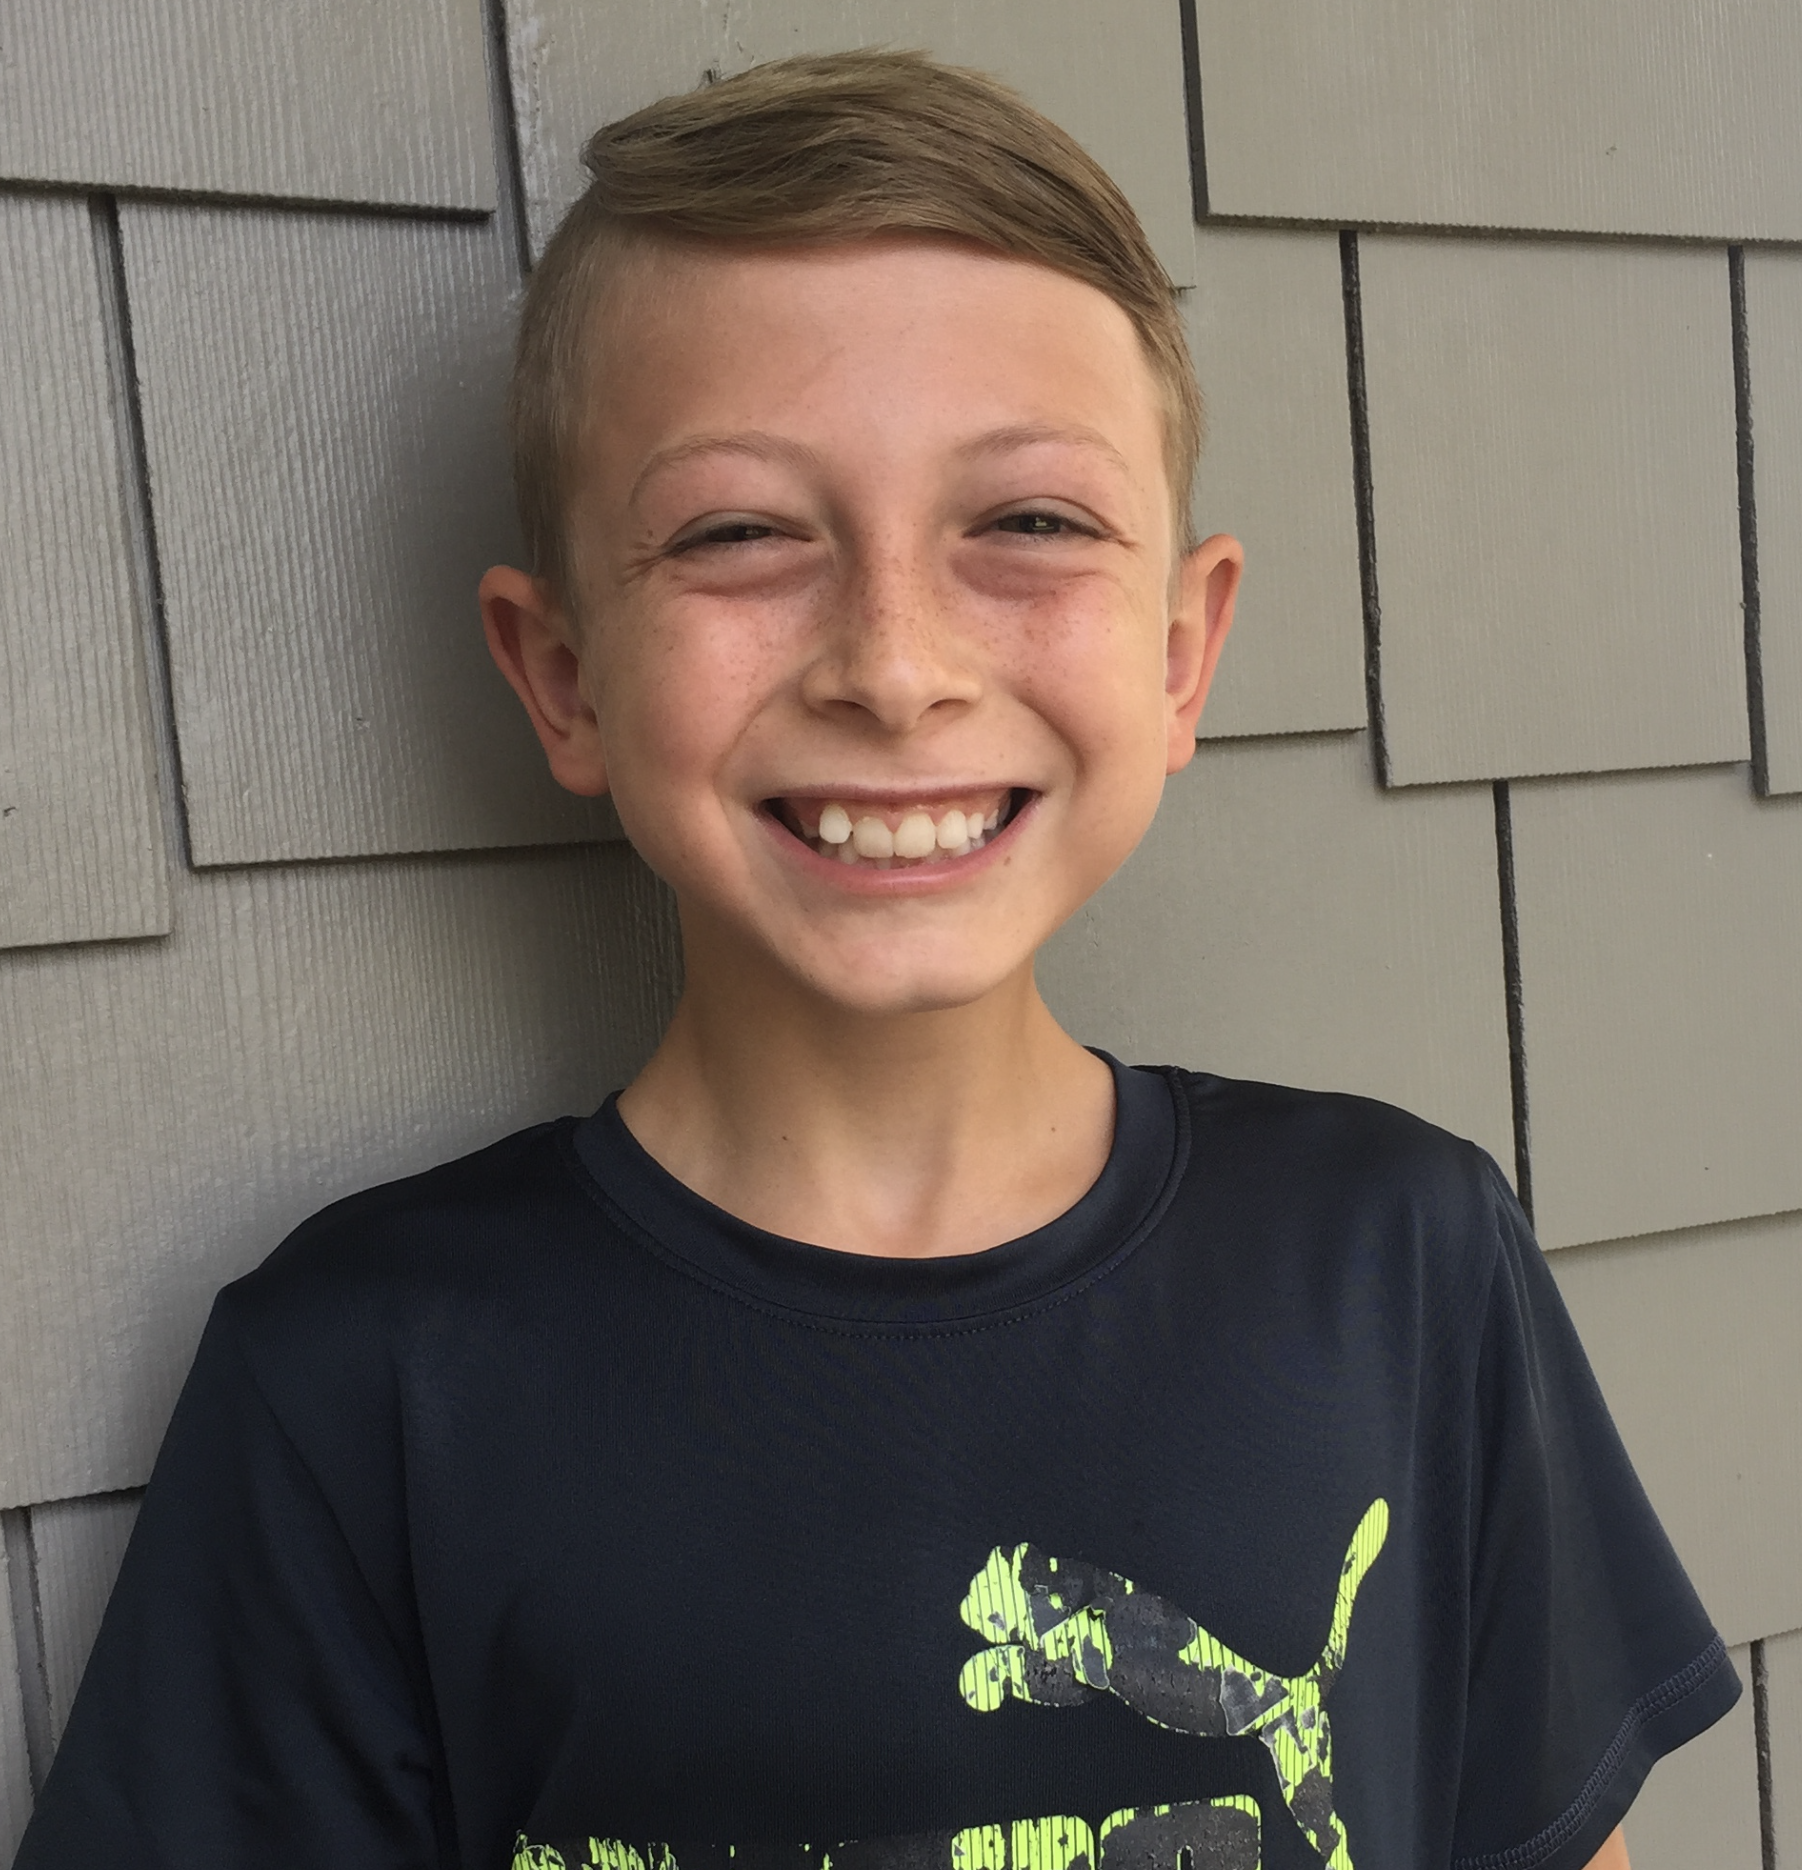 My favorite summer camp is Charleston Southern basketball camp because the five on five is fun and also it's challenging. It makes me want to come back next year. Jimmy Age 11